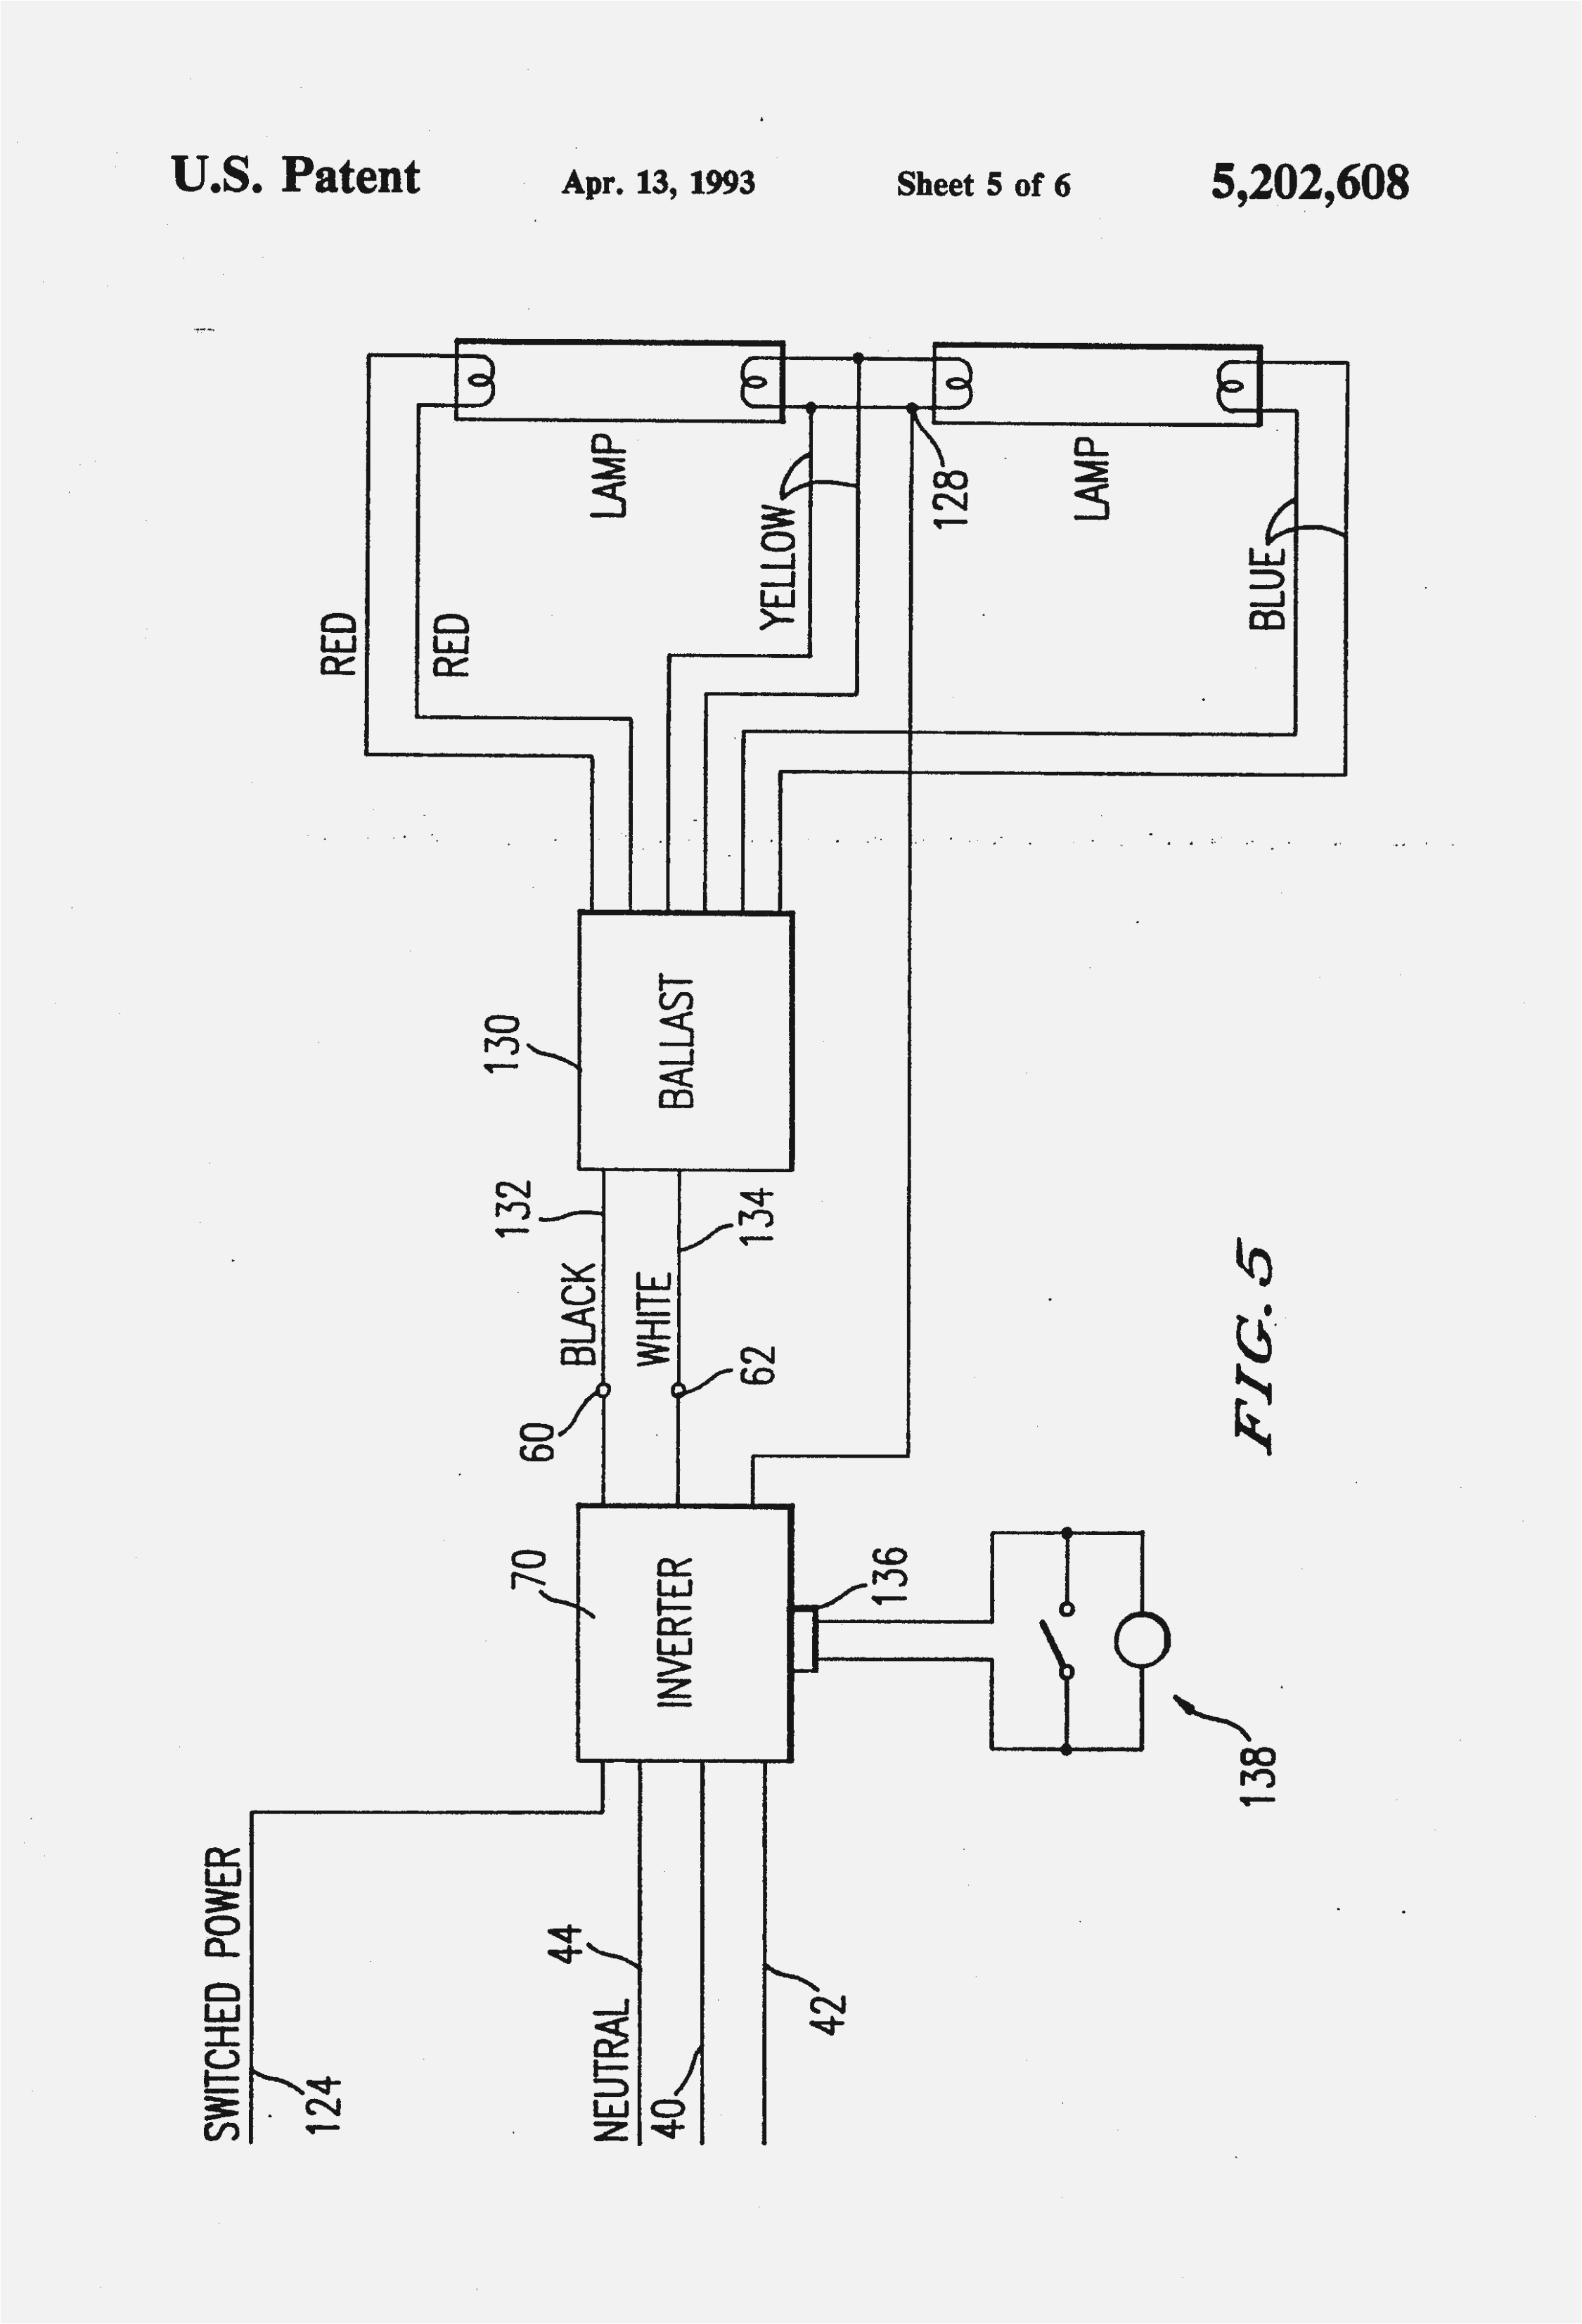 wiring diagram for ps1400 free download wiring diagram datapower sentry ps1400 wiring diagram wiring diagram power